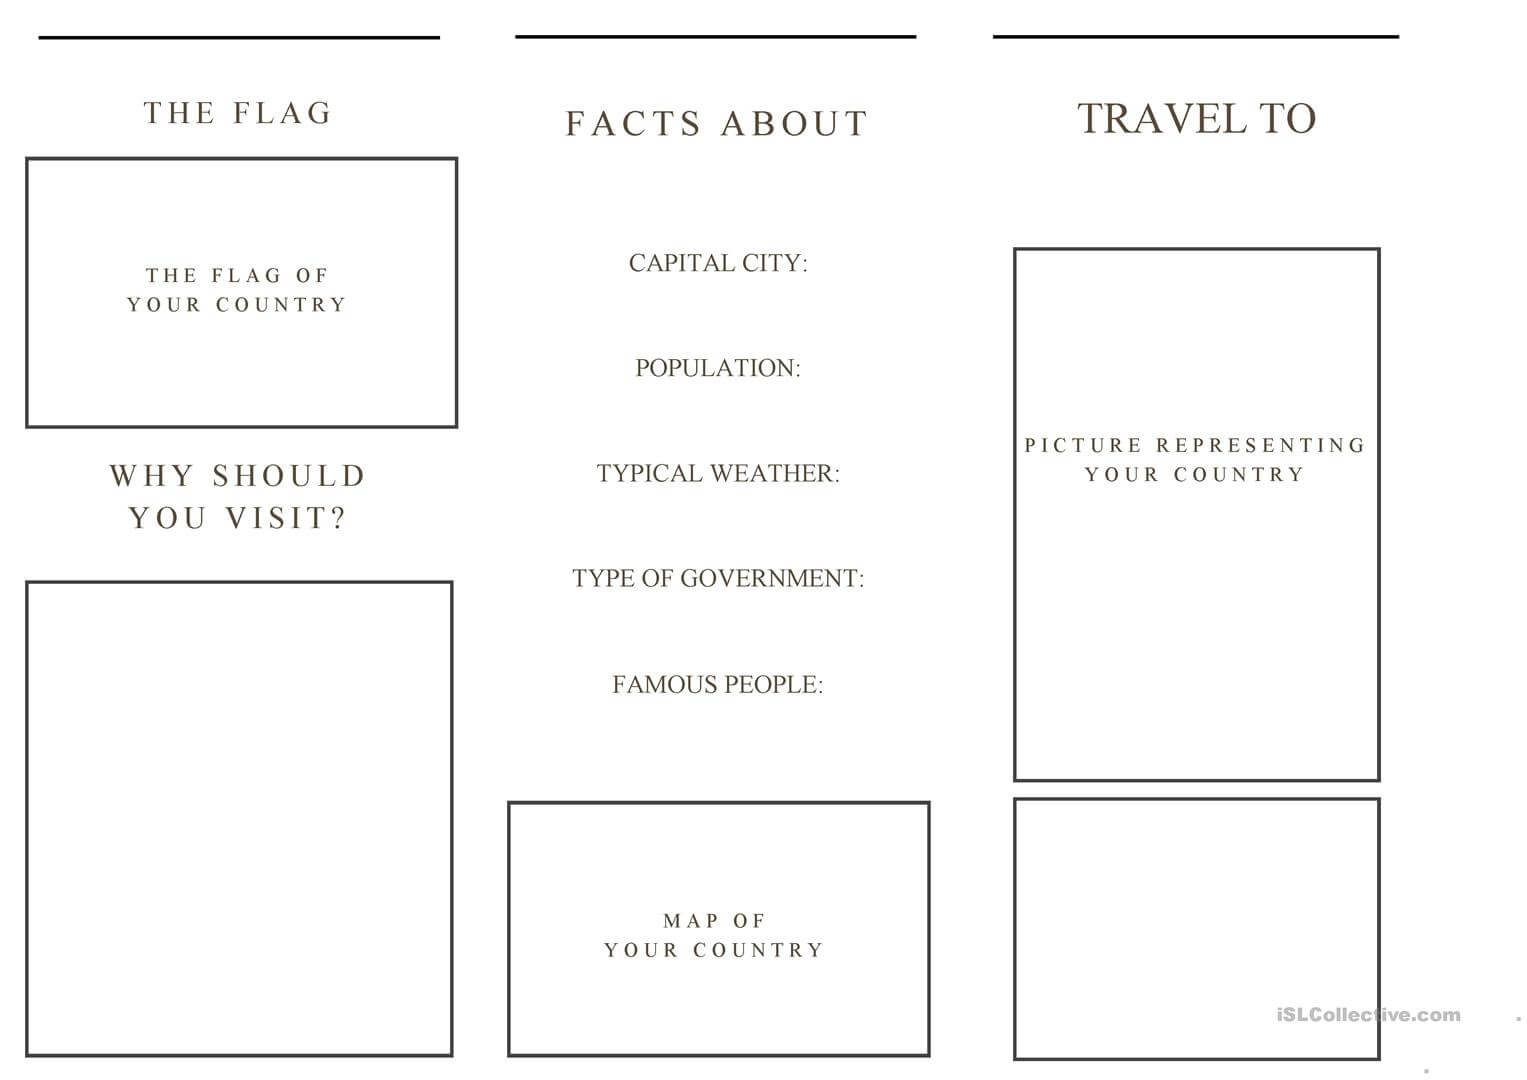 Travel Brochure Template And Example Brochure - English Esl within Travel Brochure Template For Students